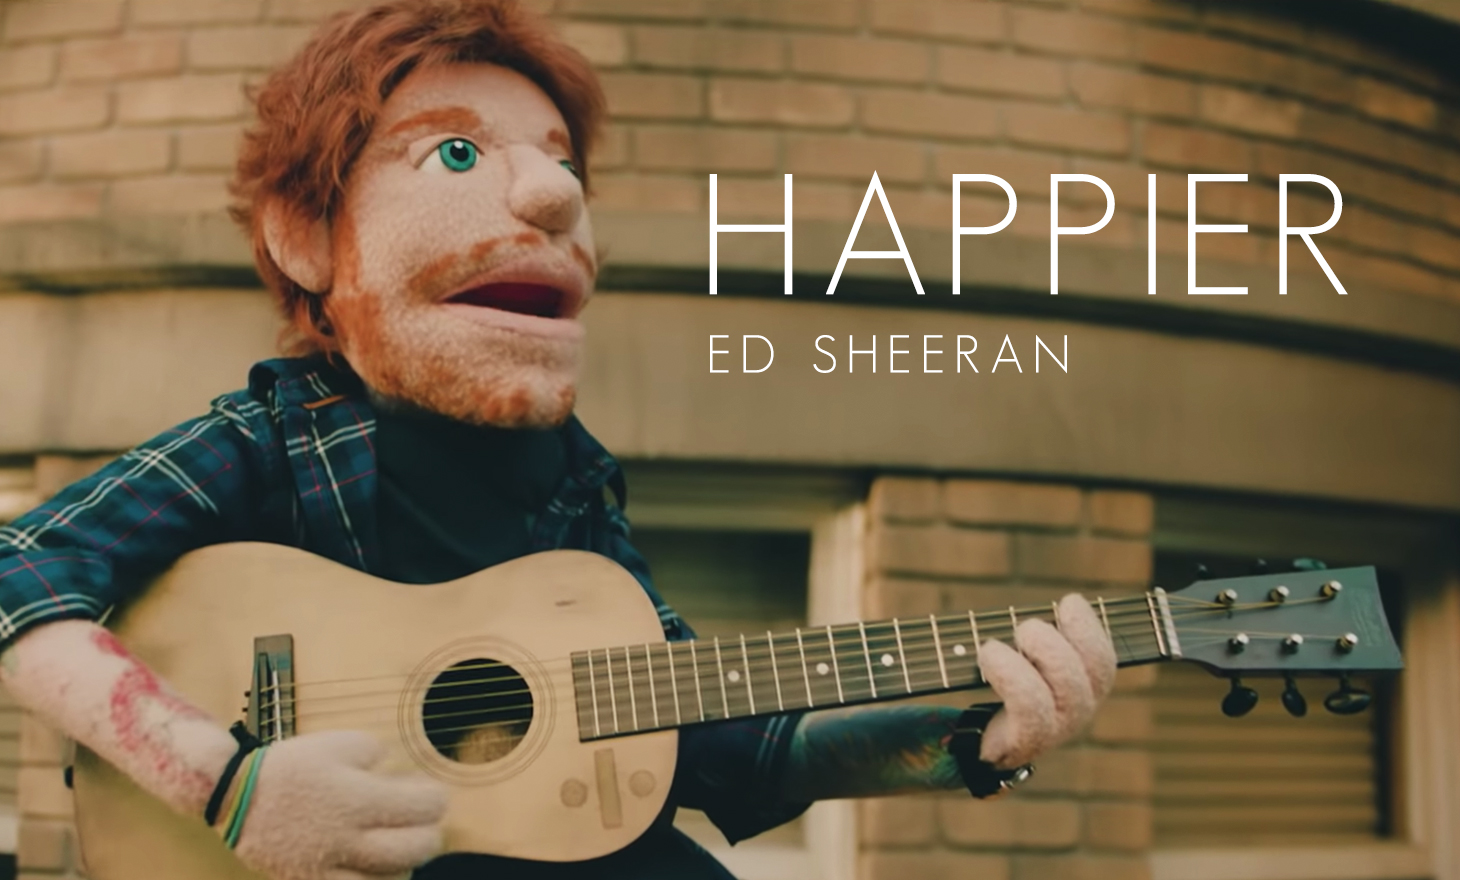 Ed Sheeran : Happier